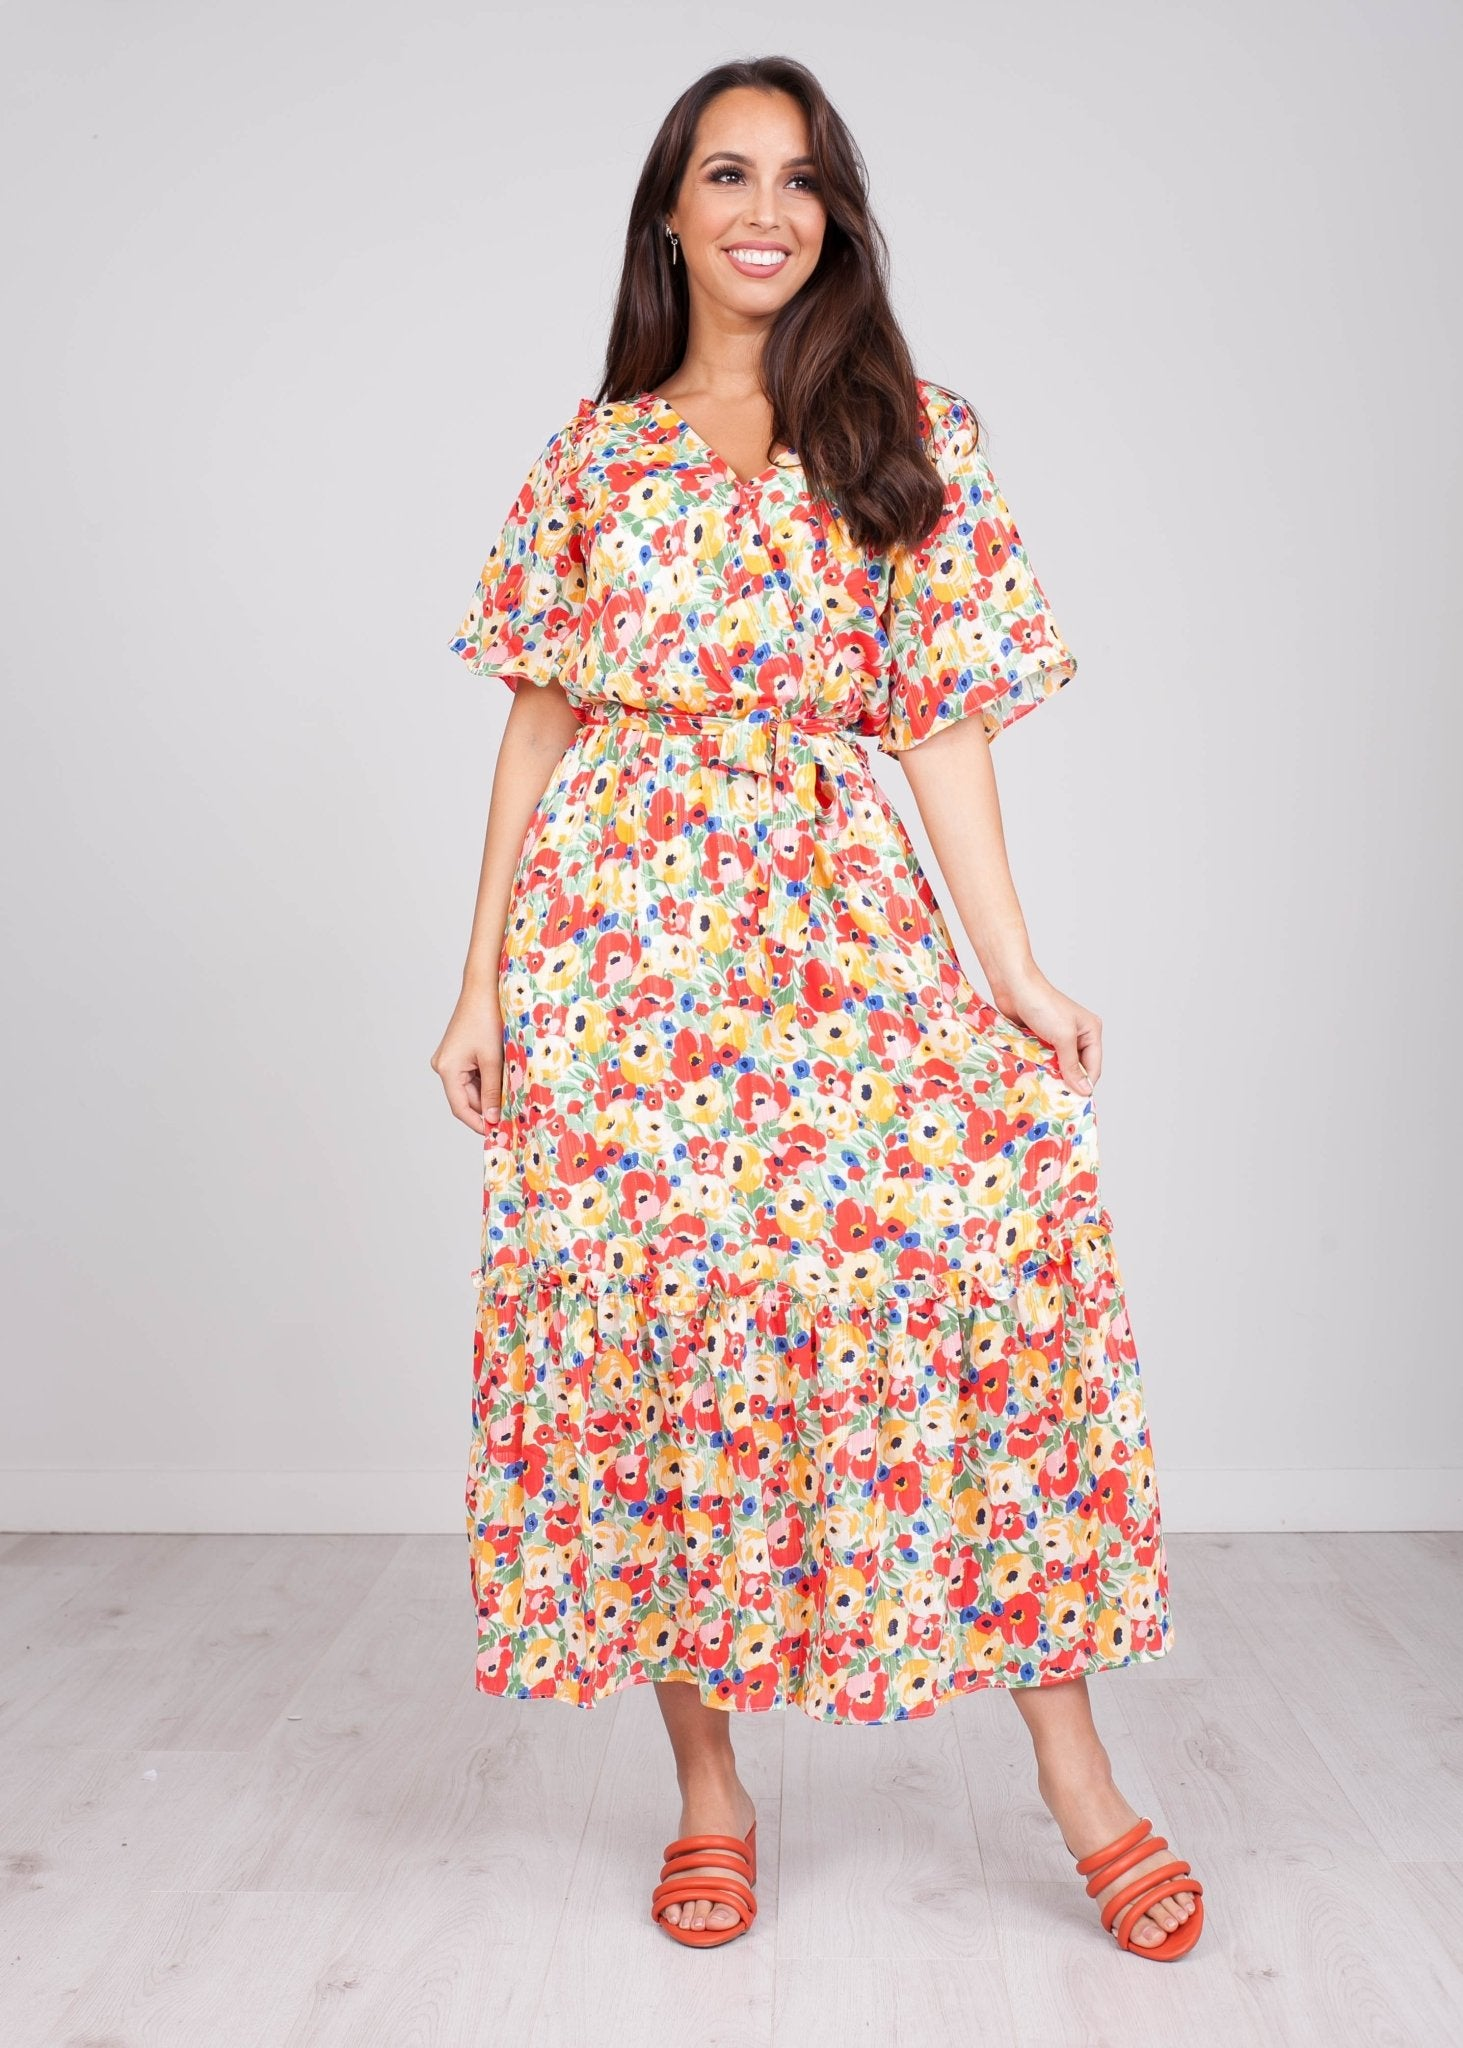 FiFi Red Floral Midi Dress - The Walk in Wardrobe